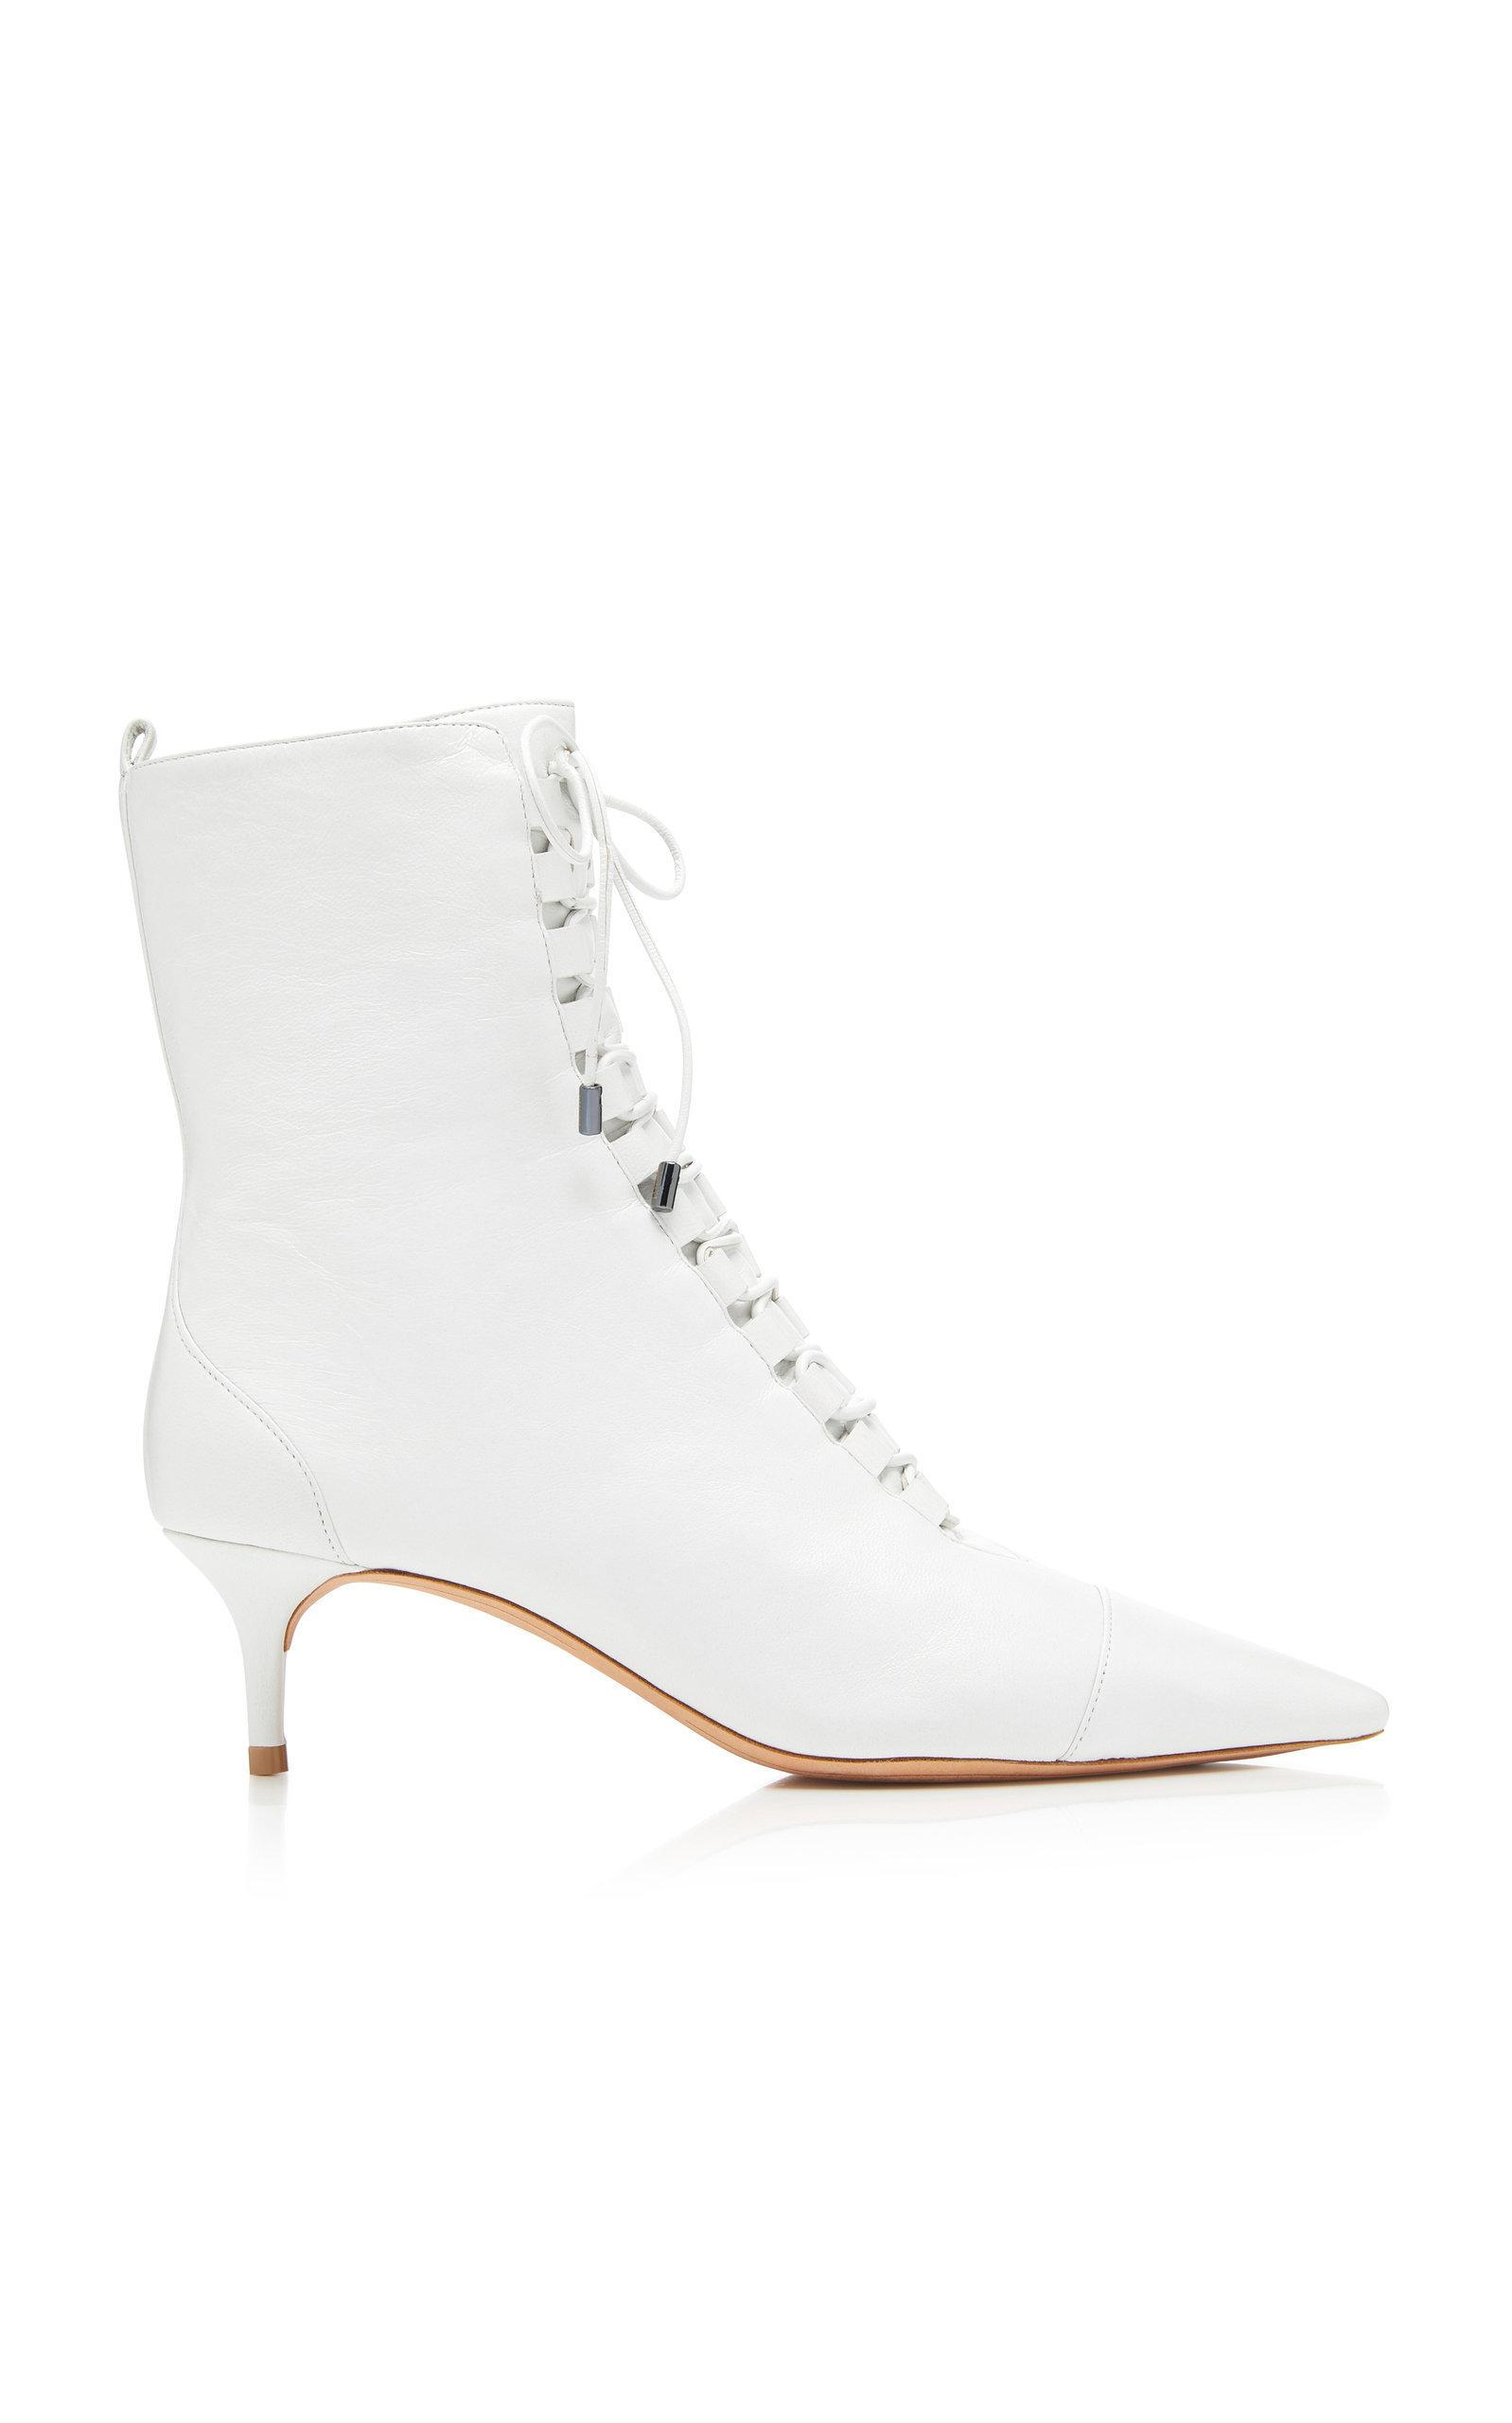 663617336485 Alexandre Birman Millen Lace-Up Leather Ankle Boots In White